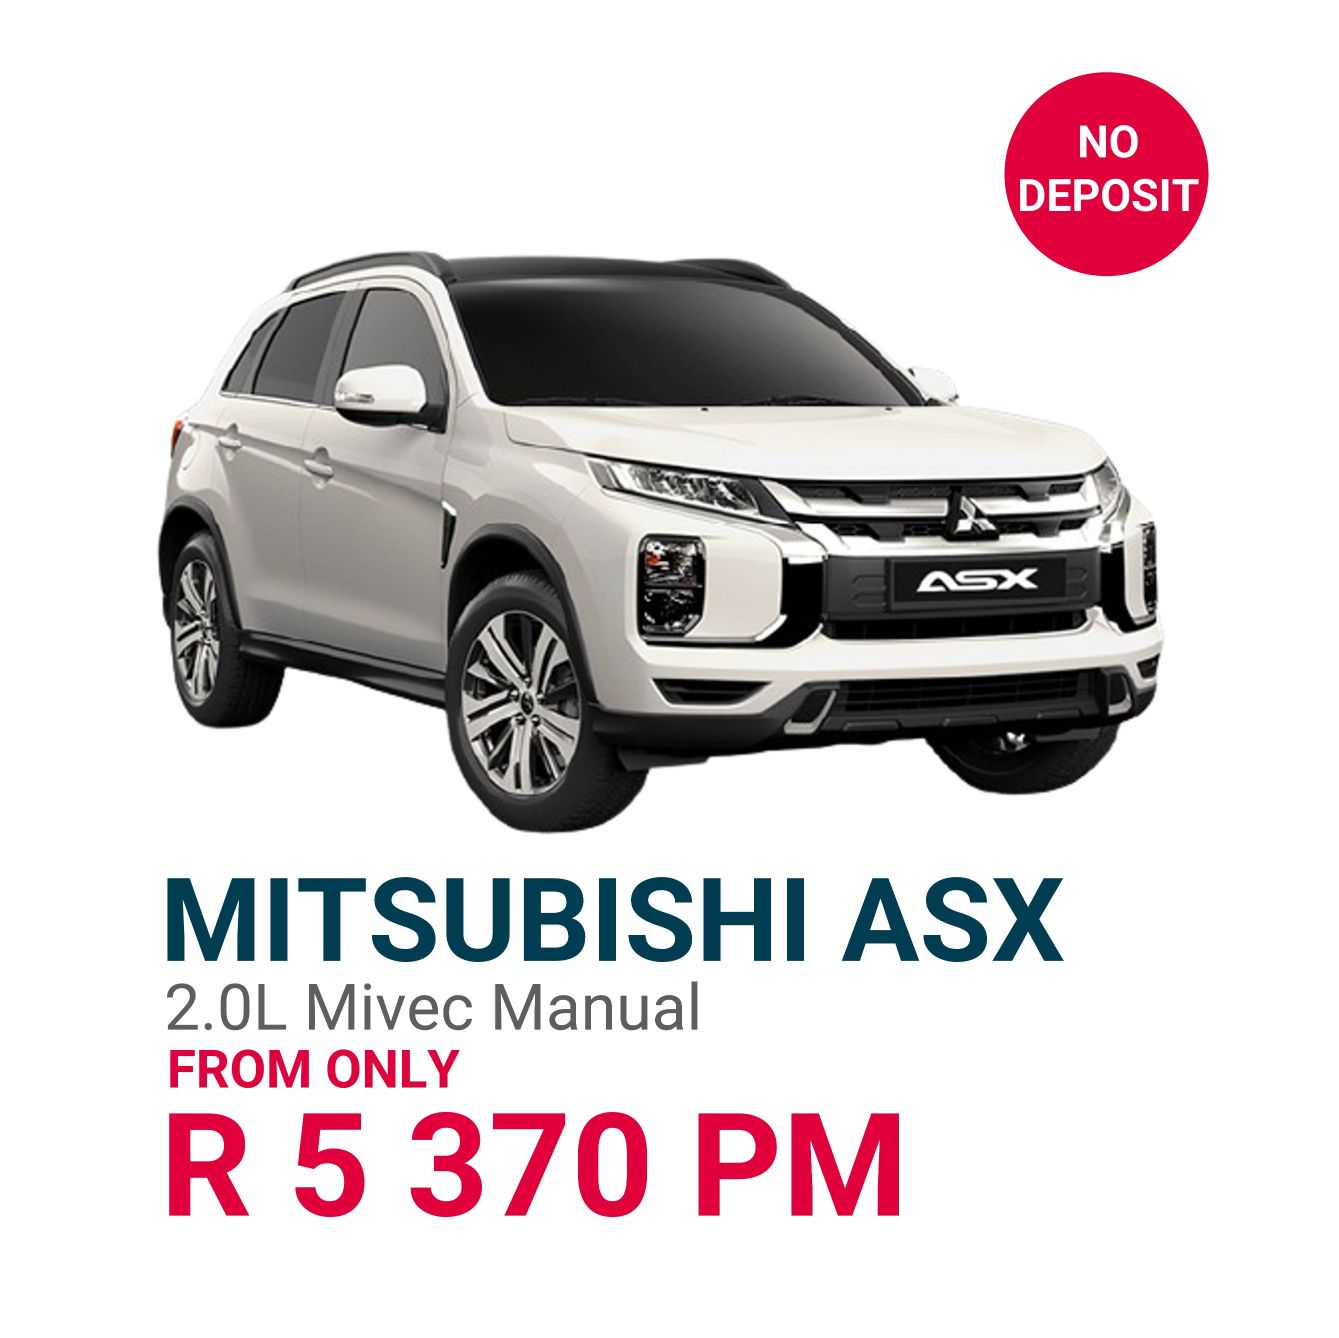 mitsubishi-asx-from-only-r5-370pm